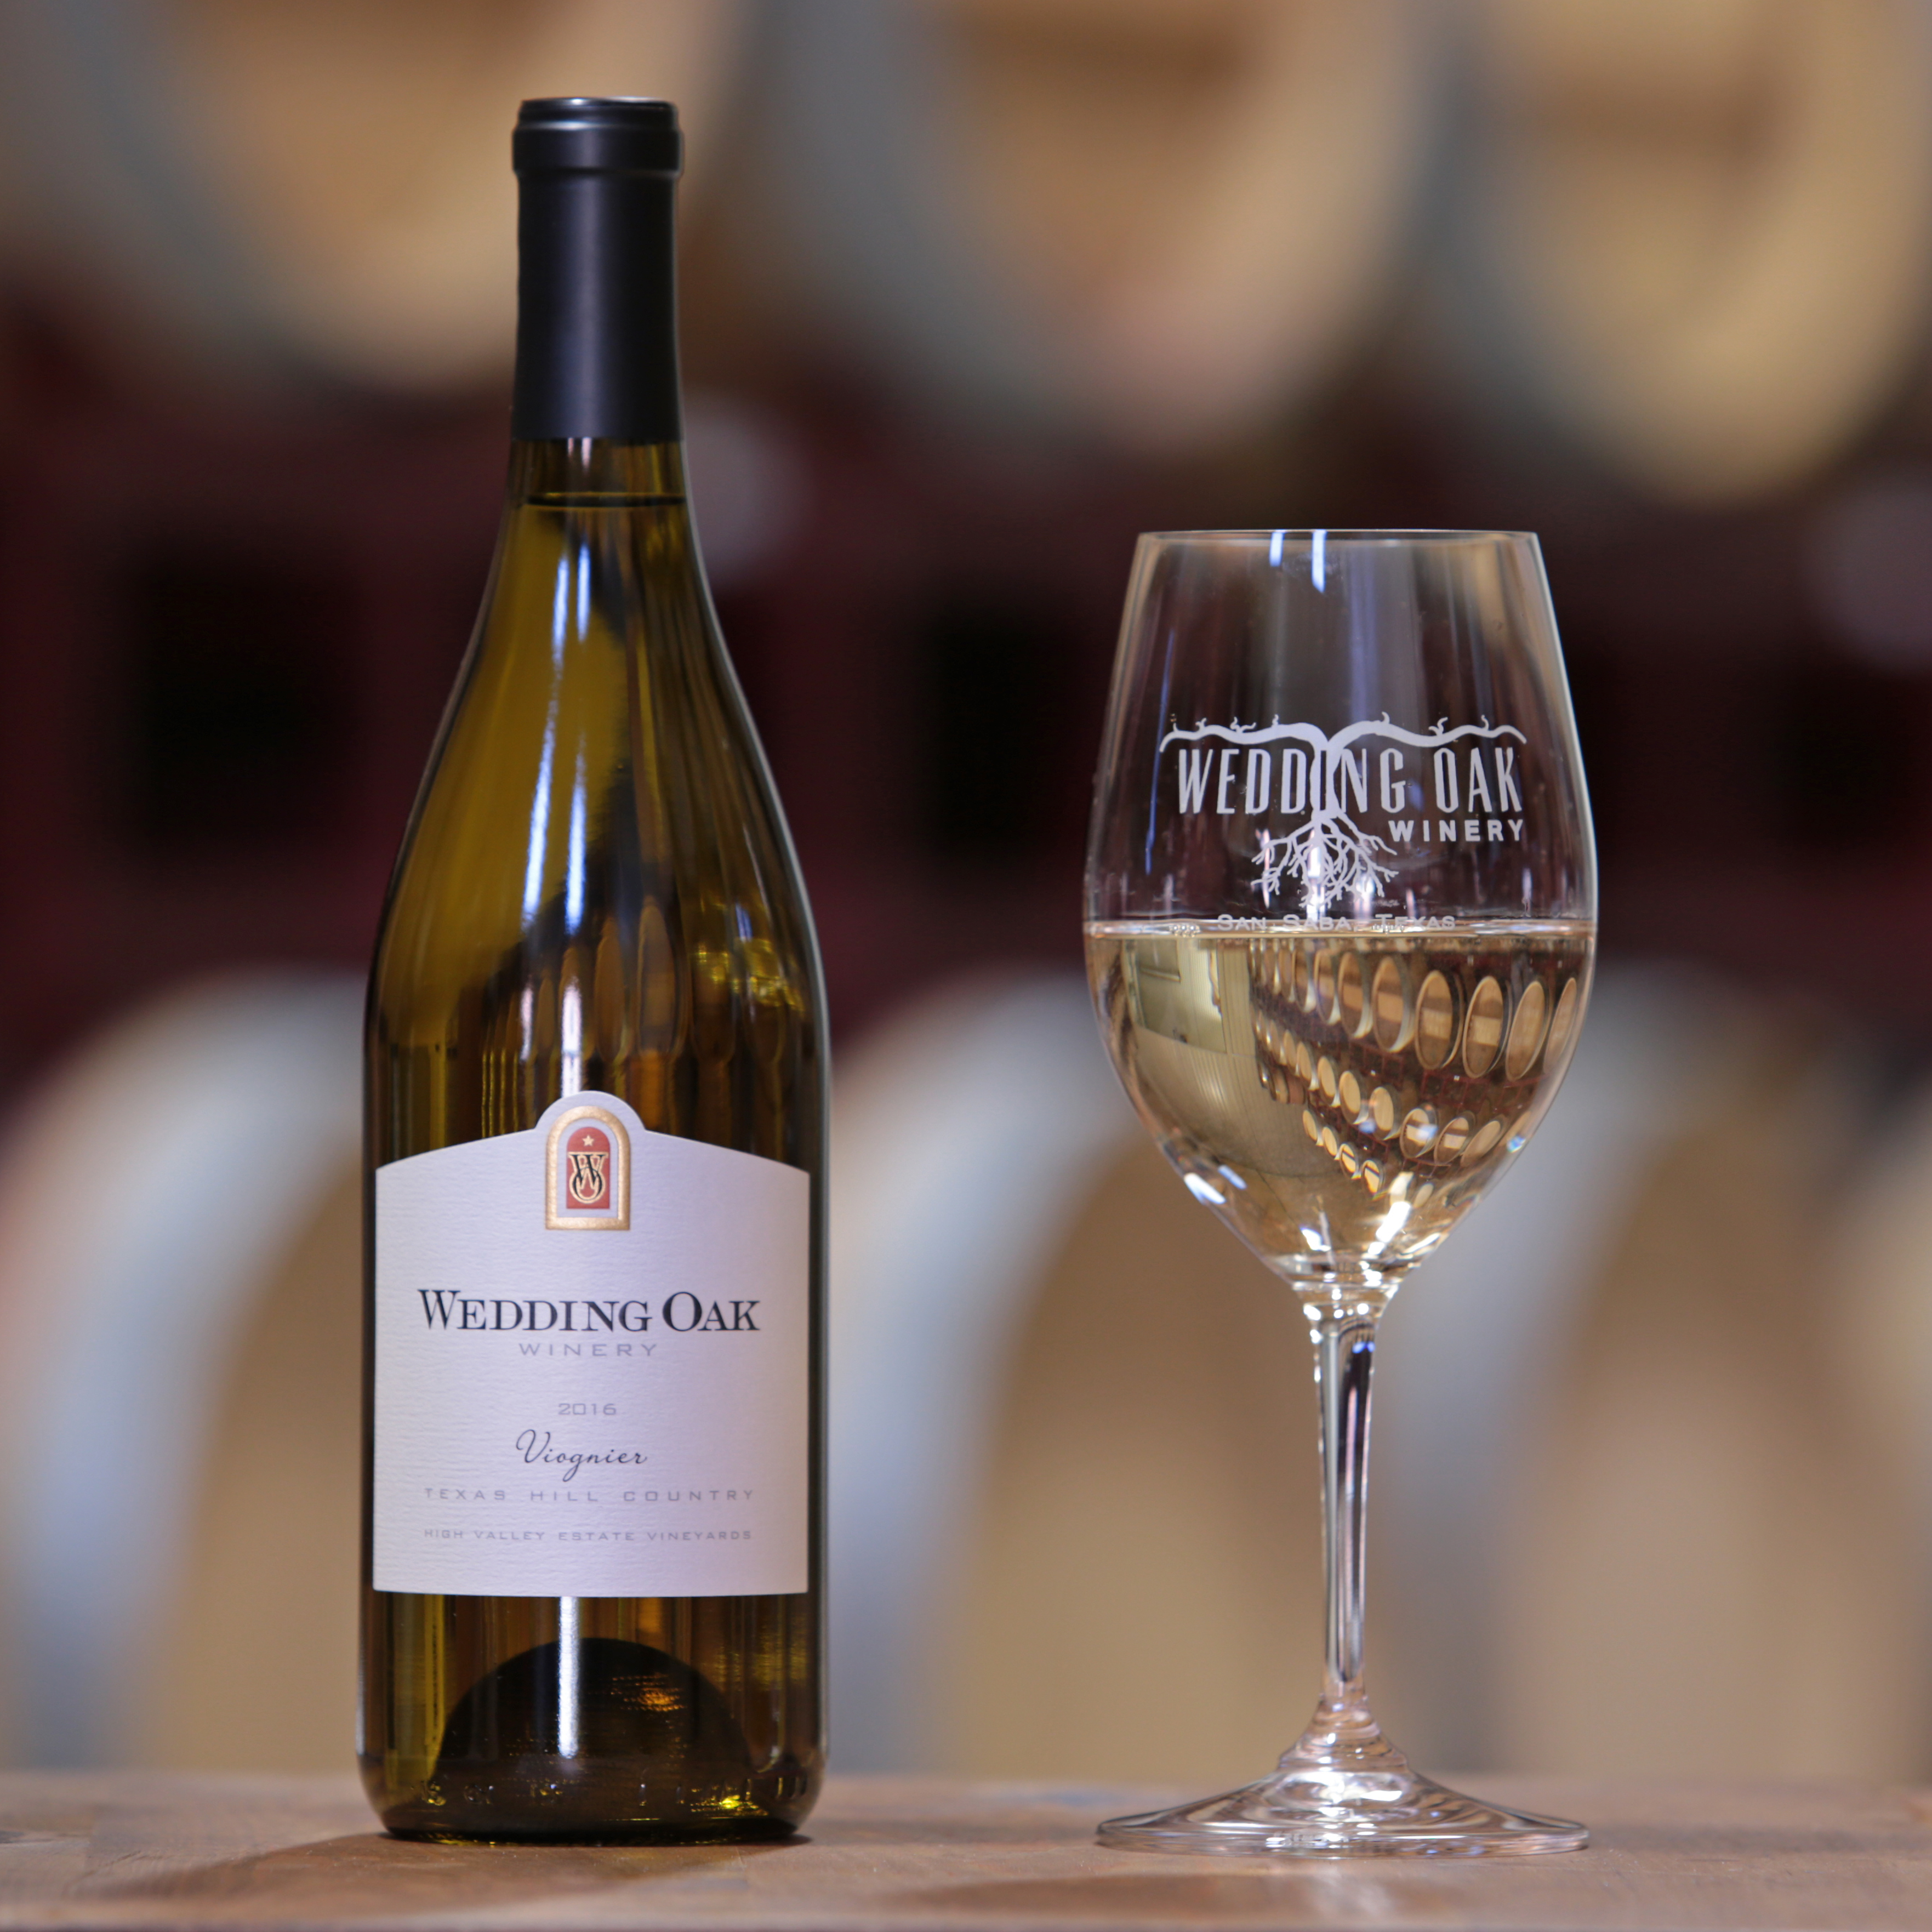 Viognier High Valley Vineyards 2016